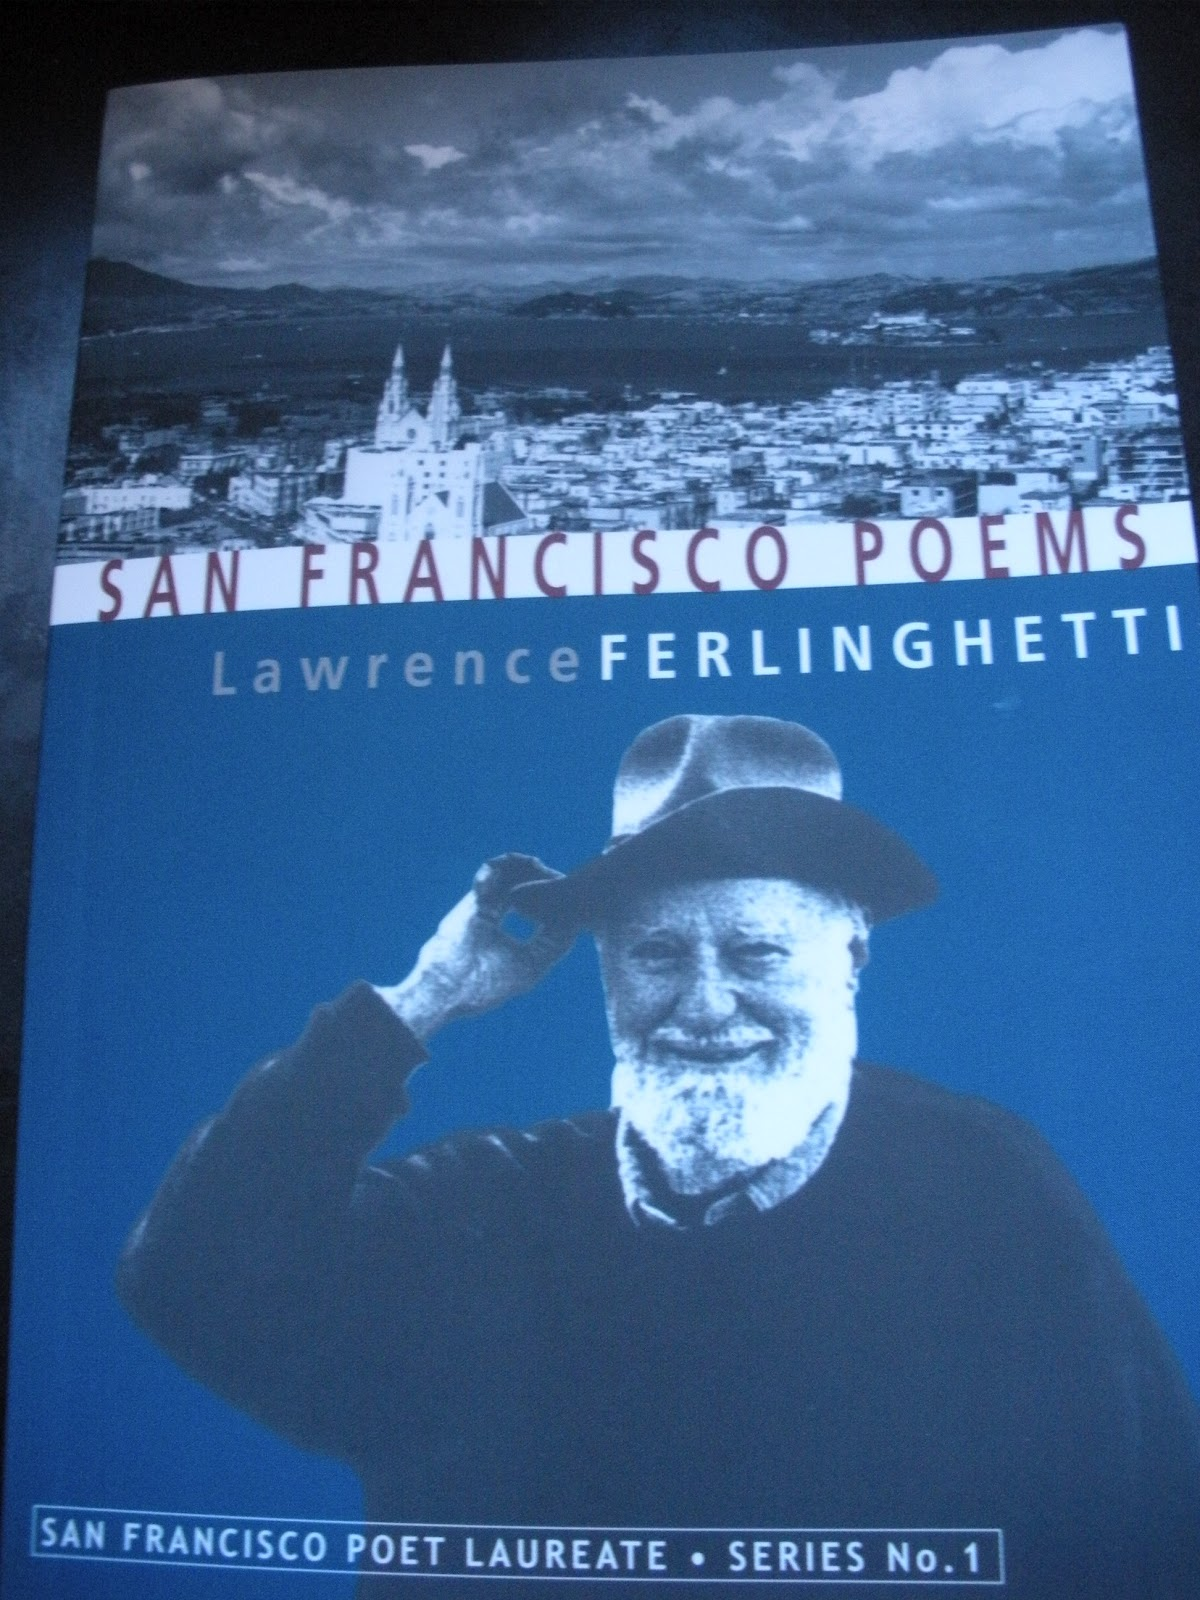 themes of lawrence ferlinghettis poetry A critical look at lawrence ferlinghetti's classic poem constantly risking absurdity(#15).